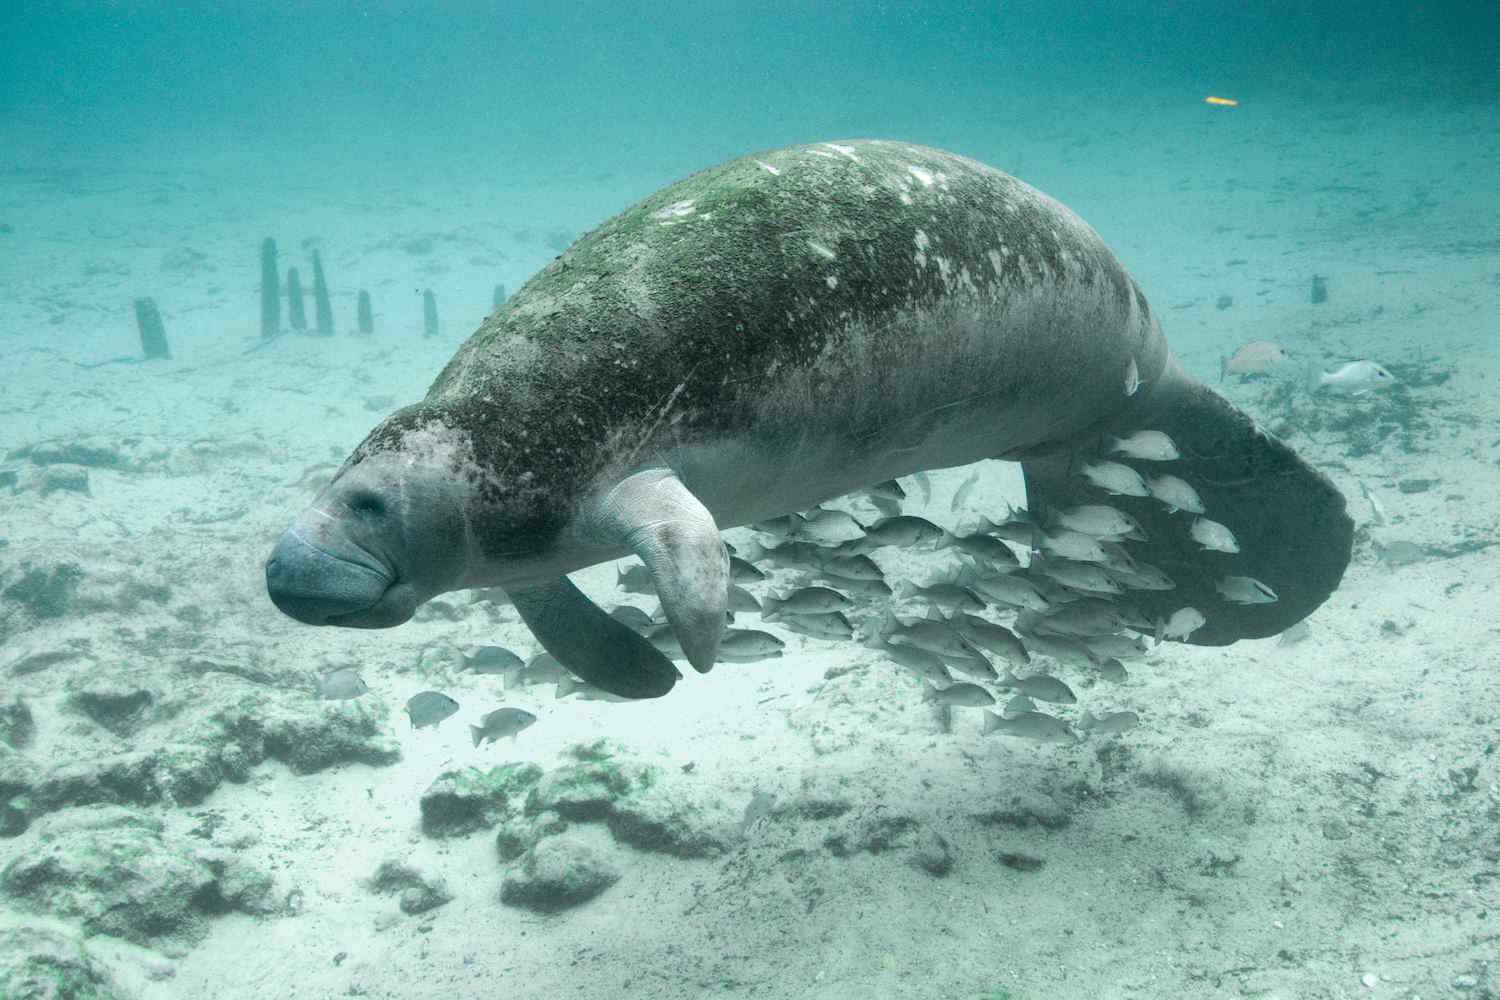 """MANATEE - The Florida manatee prefers a warm and shallow estuary or coastal waterway, where it can focus on its major activity: eating sea grass. Its herbivorous nature—unusual for a marine mammal—encourages the colloquial """"sea cow"""" nomenclature, as does its chunky body. But really the manatee, with its heavy bones, wrinkly gray skin, and mournful expression, is much more like the elephant, to whom it is related, and not at all like the hyrax (an unappealing rodent), to whom it is also related."""